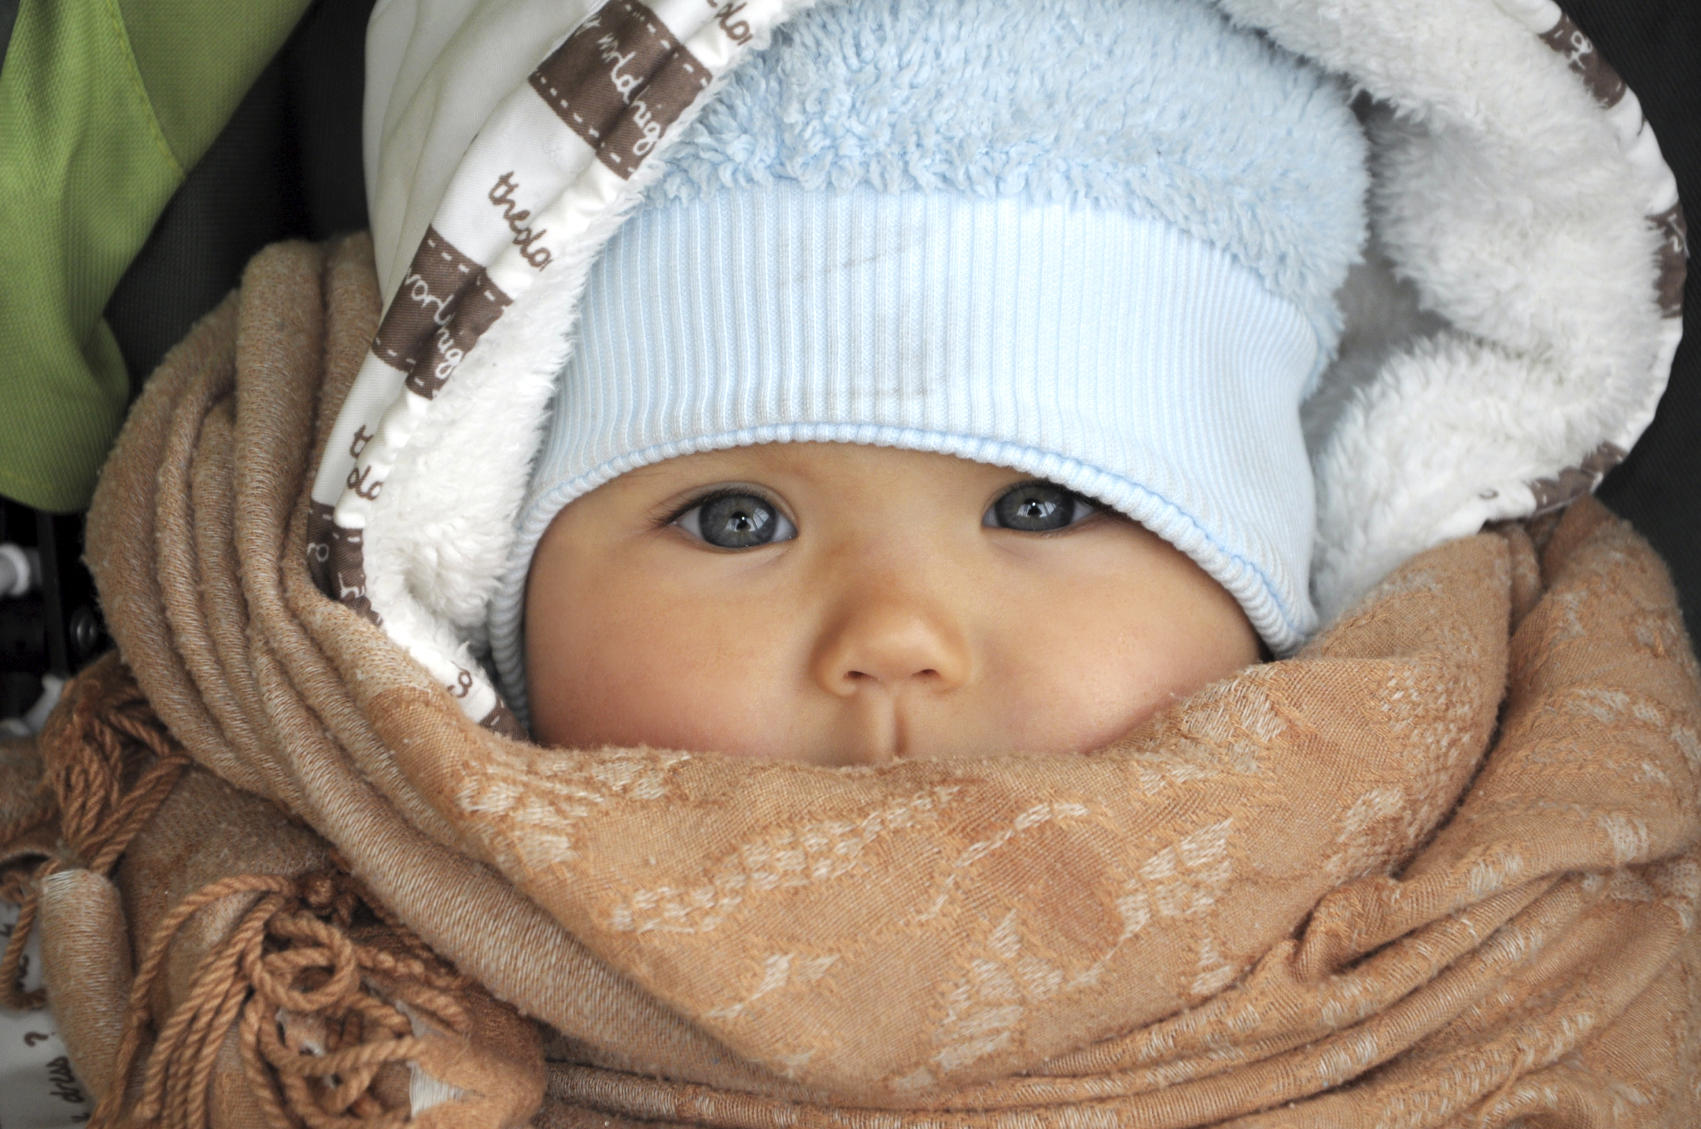 Baby in warm clothes in cold weather